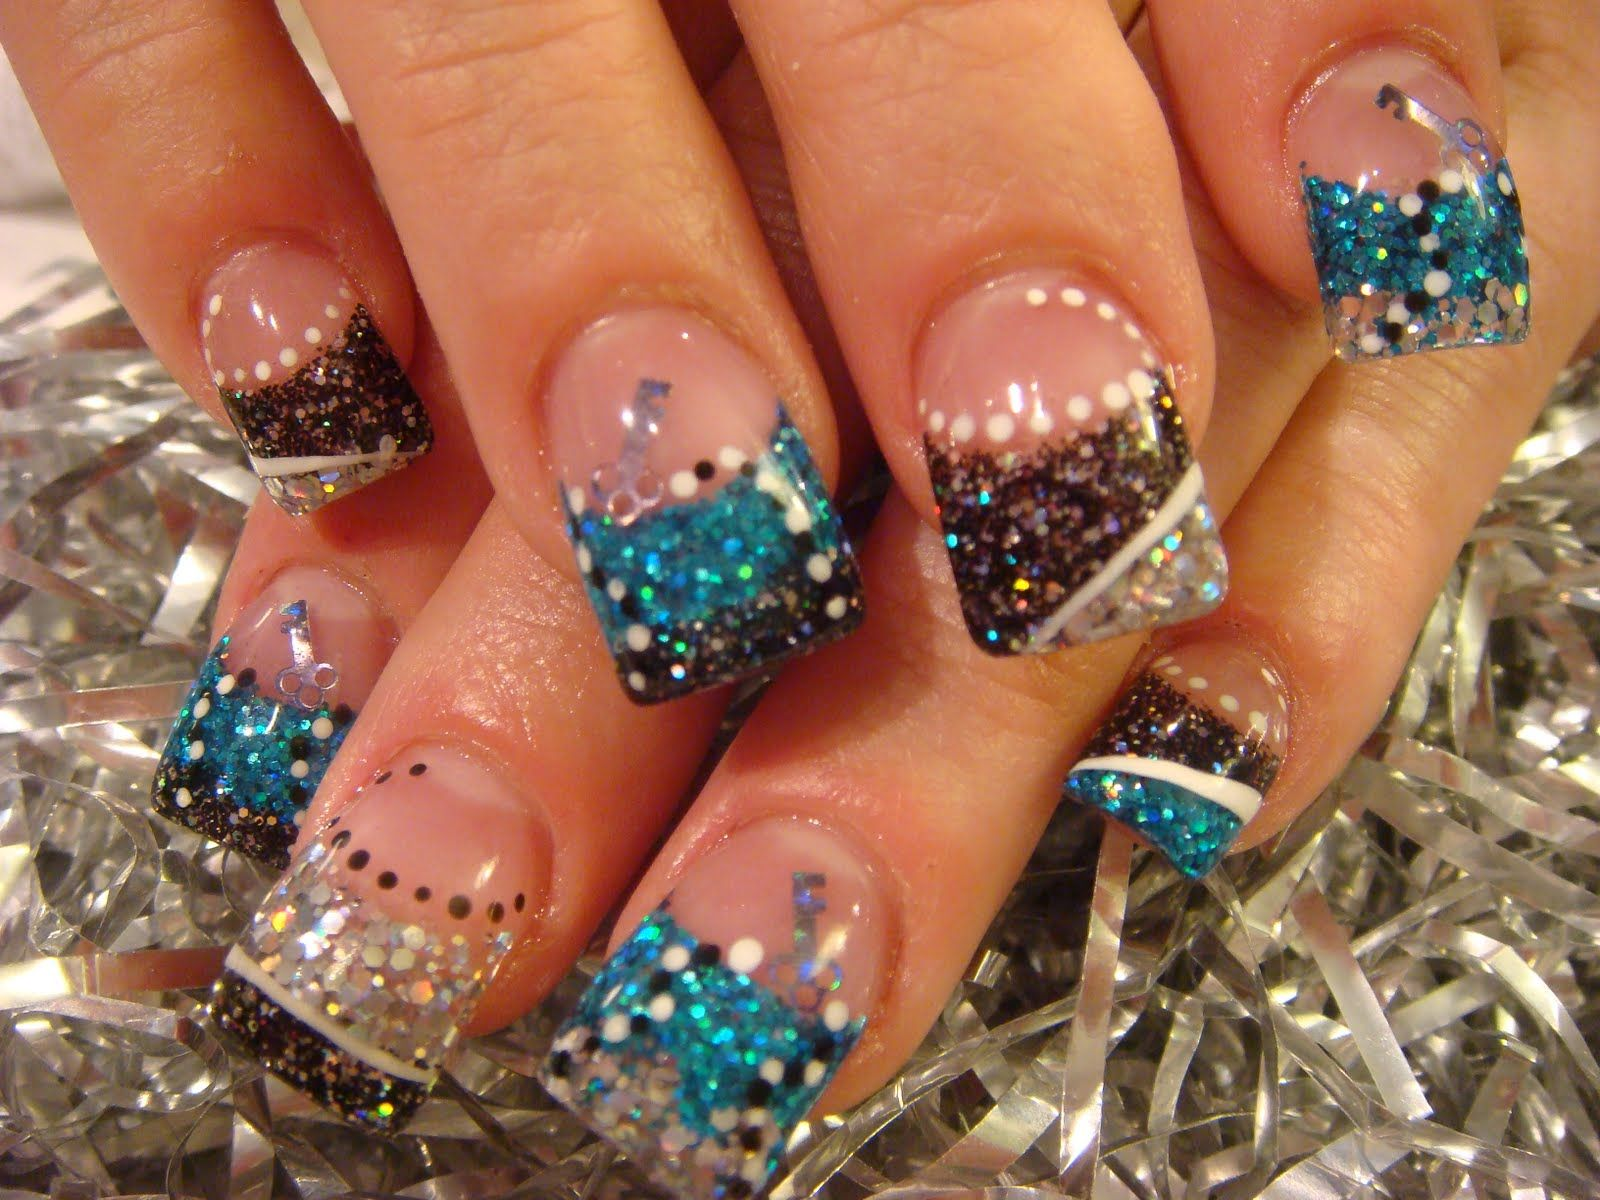 Acrylic Nails | some photos of the best and new acrylic nails styles ...